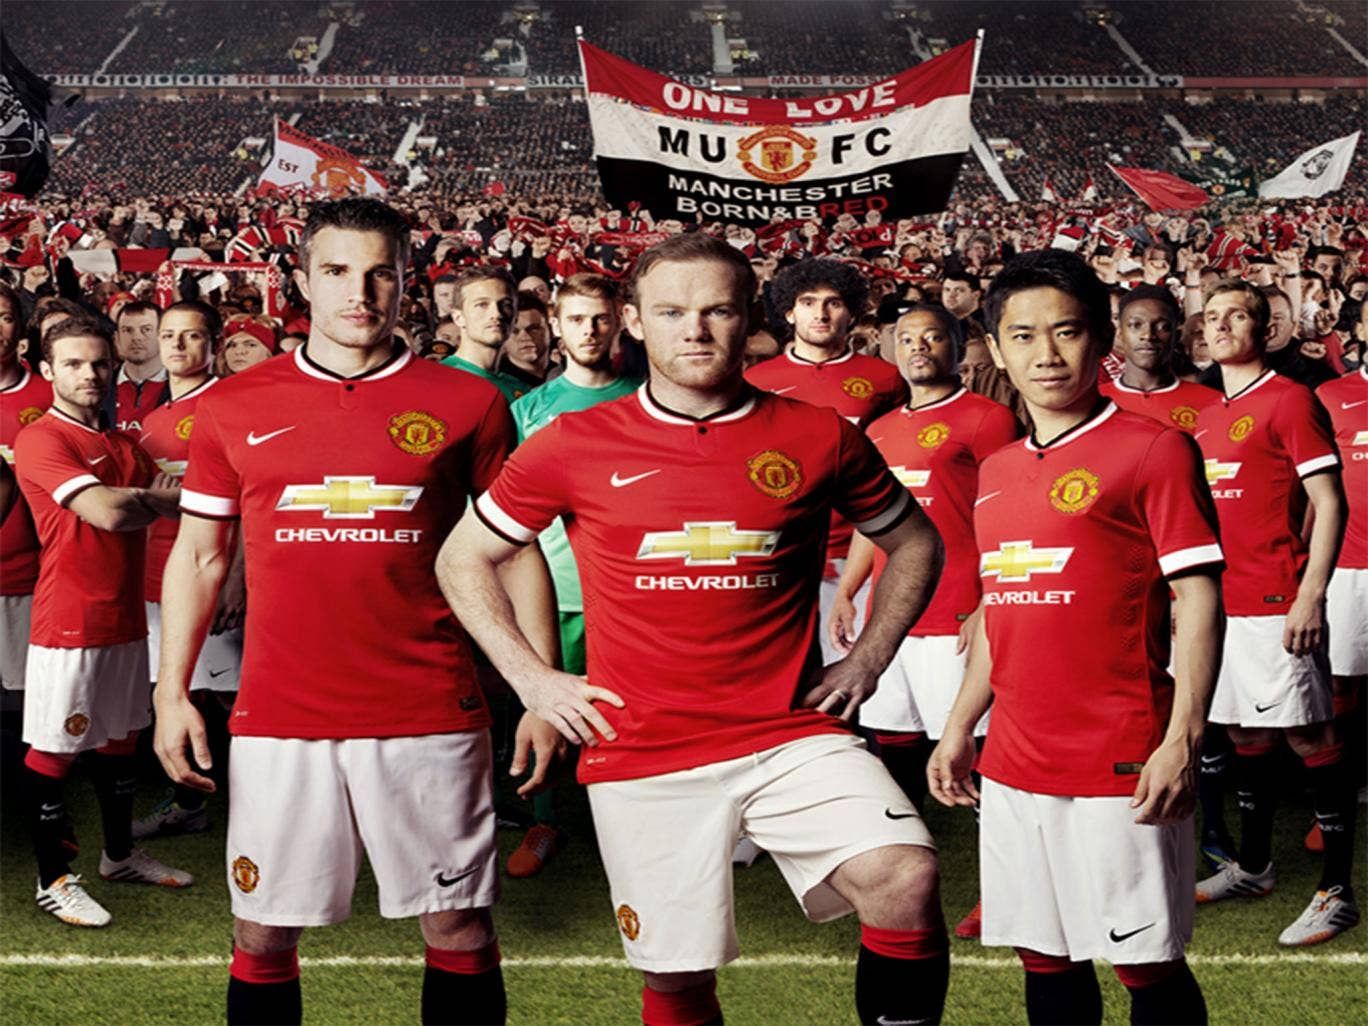 Manchester United have unveiled their new kit for the 2014/15 season